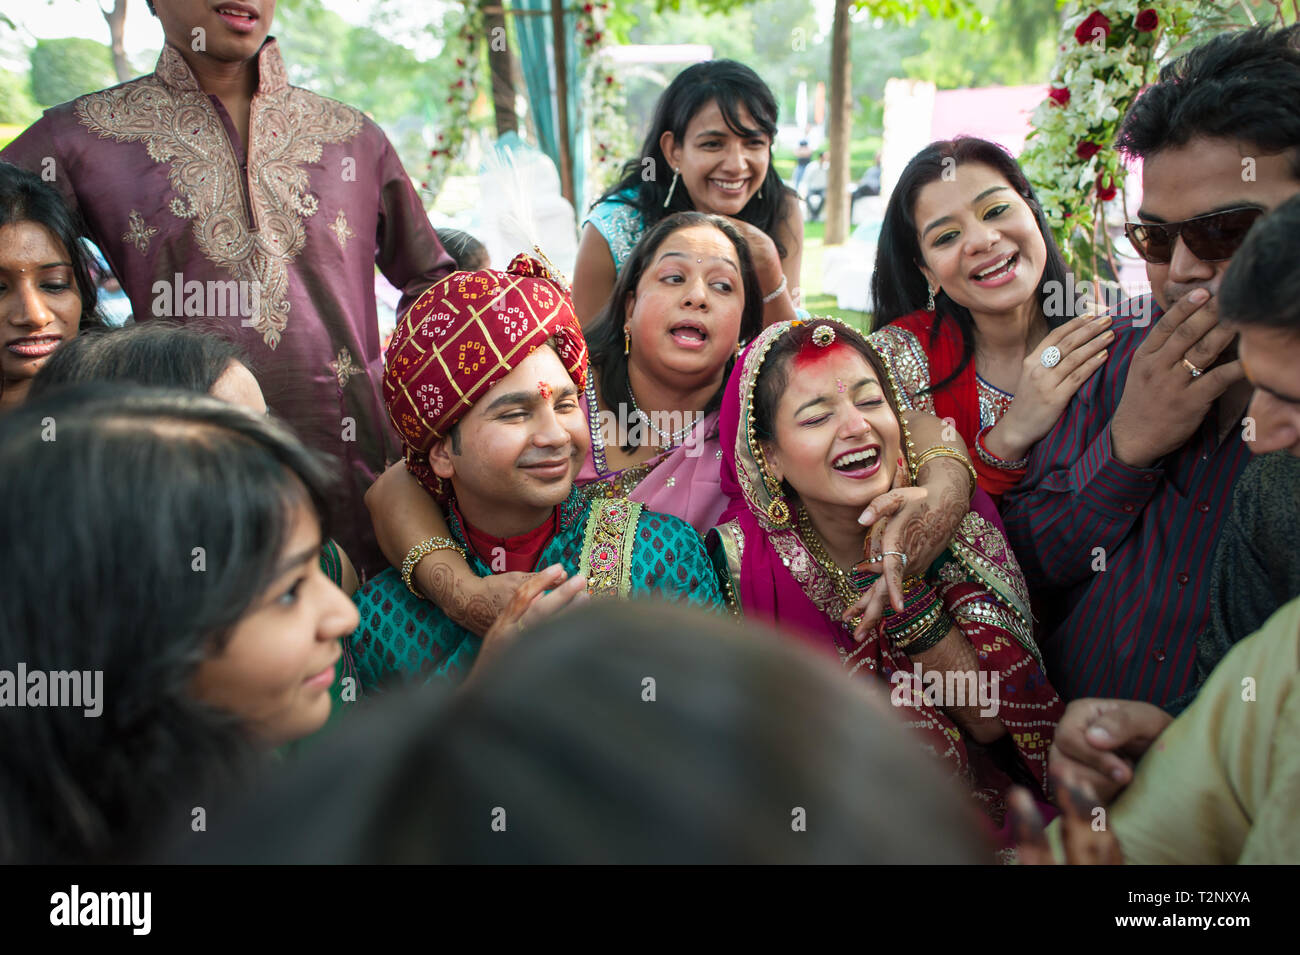 The bride and groom at an Indian wedding, surrounded by friends and family. - Stock Image